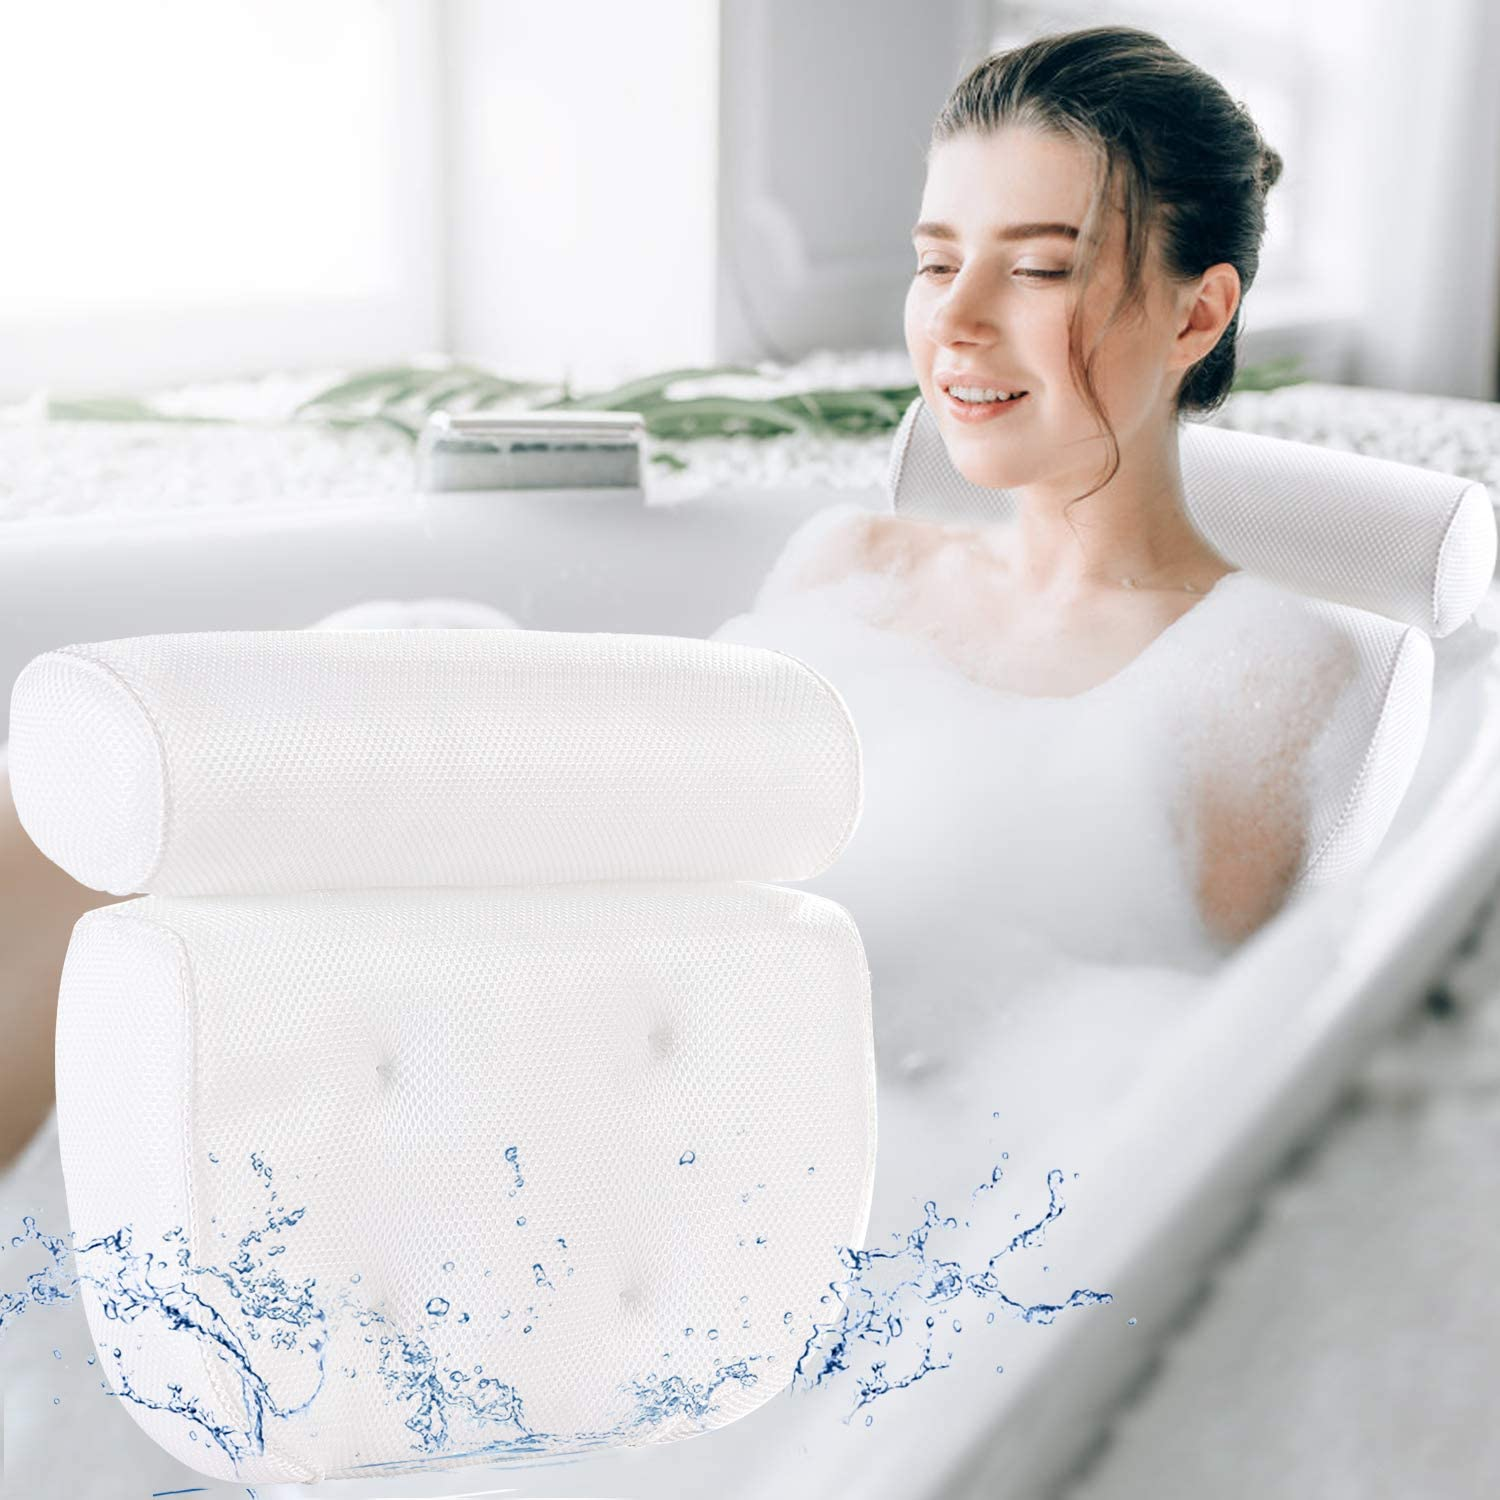 Bath Pillow Bathtub Pillow - Bath Pillows for Tub with Neck, Head, Shoulder and Back Support - 3D Air Mesh Spa Bath Pillow, Non-Slip, Extra Thick, Soft and Quick Dry Spa Pillow for Bathtub